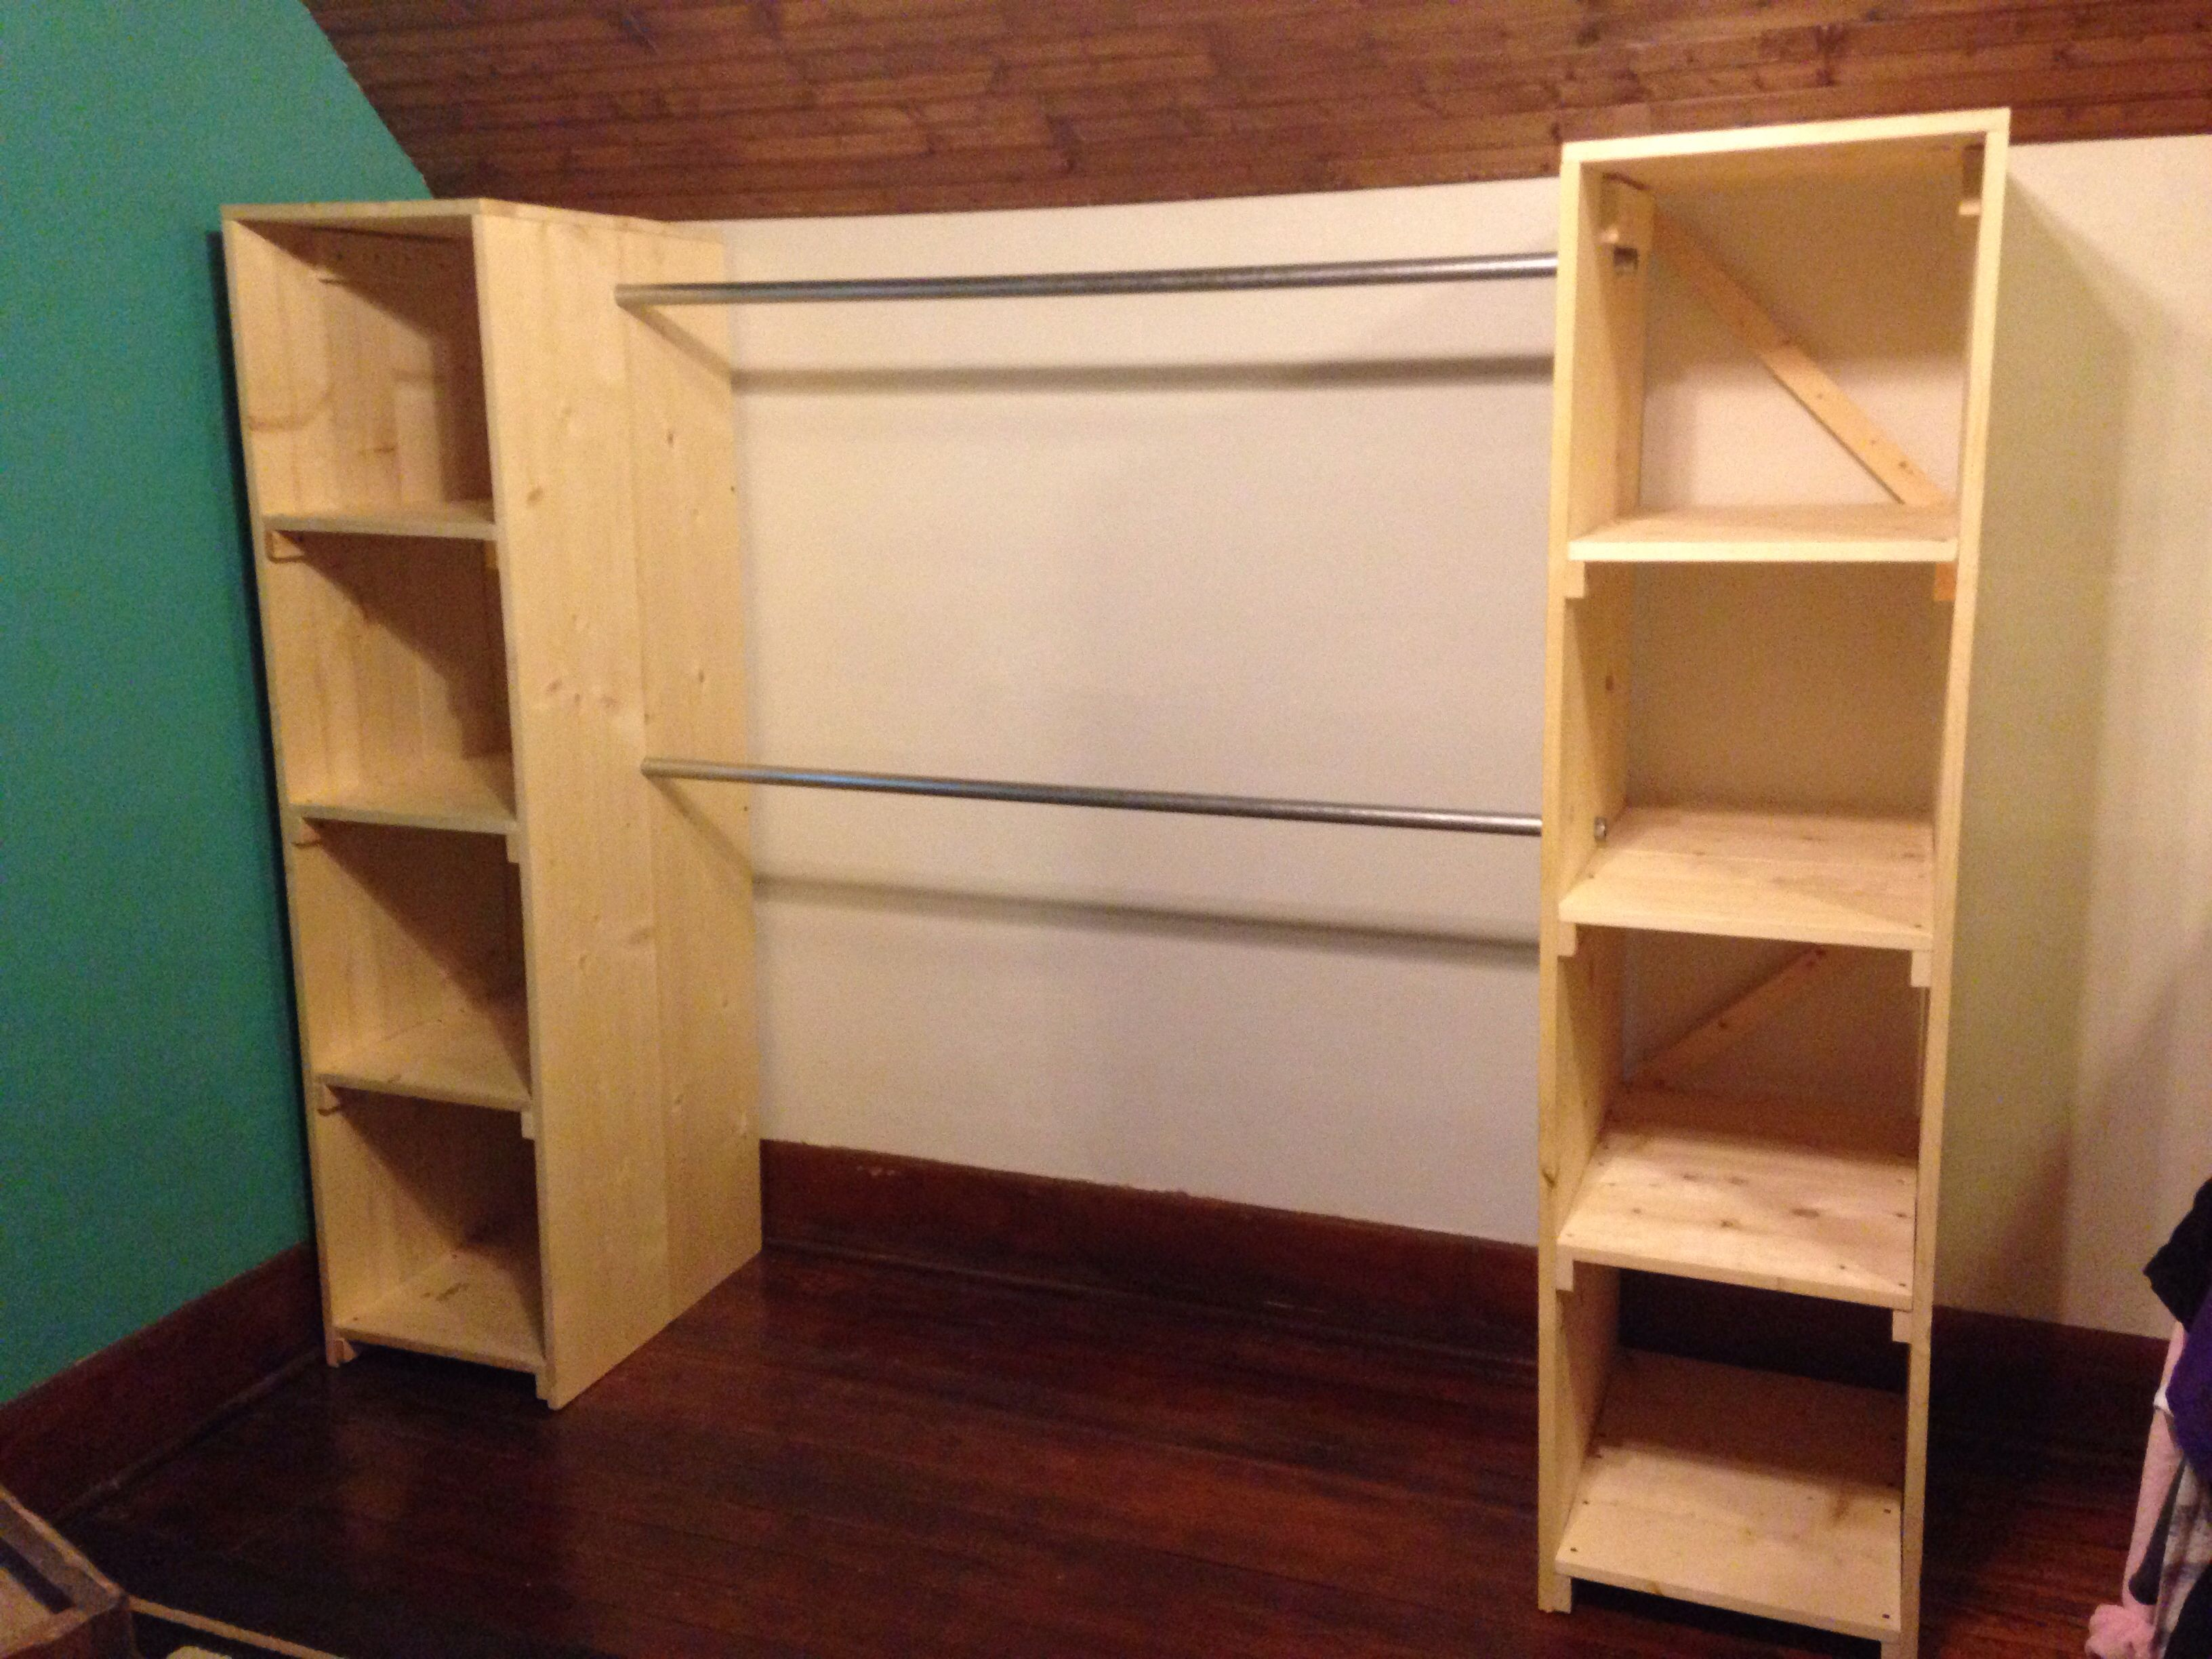 My Free Standing Closet Is Finished It S Perfect For Our Small Home With No Storage Space No